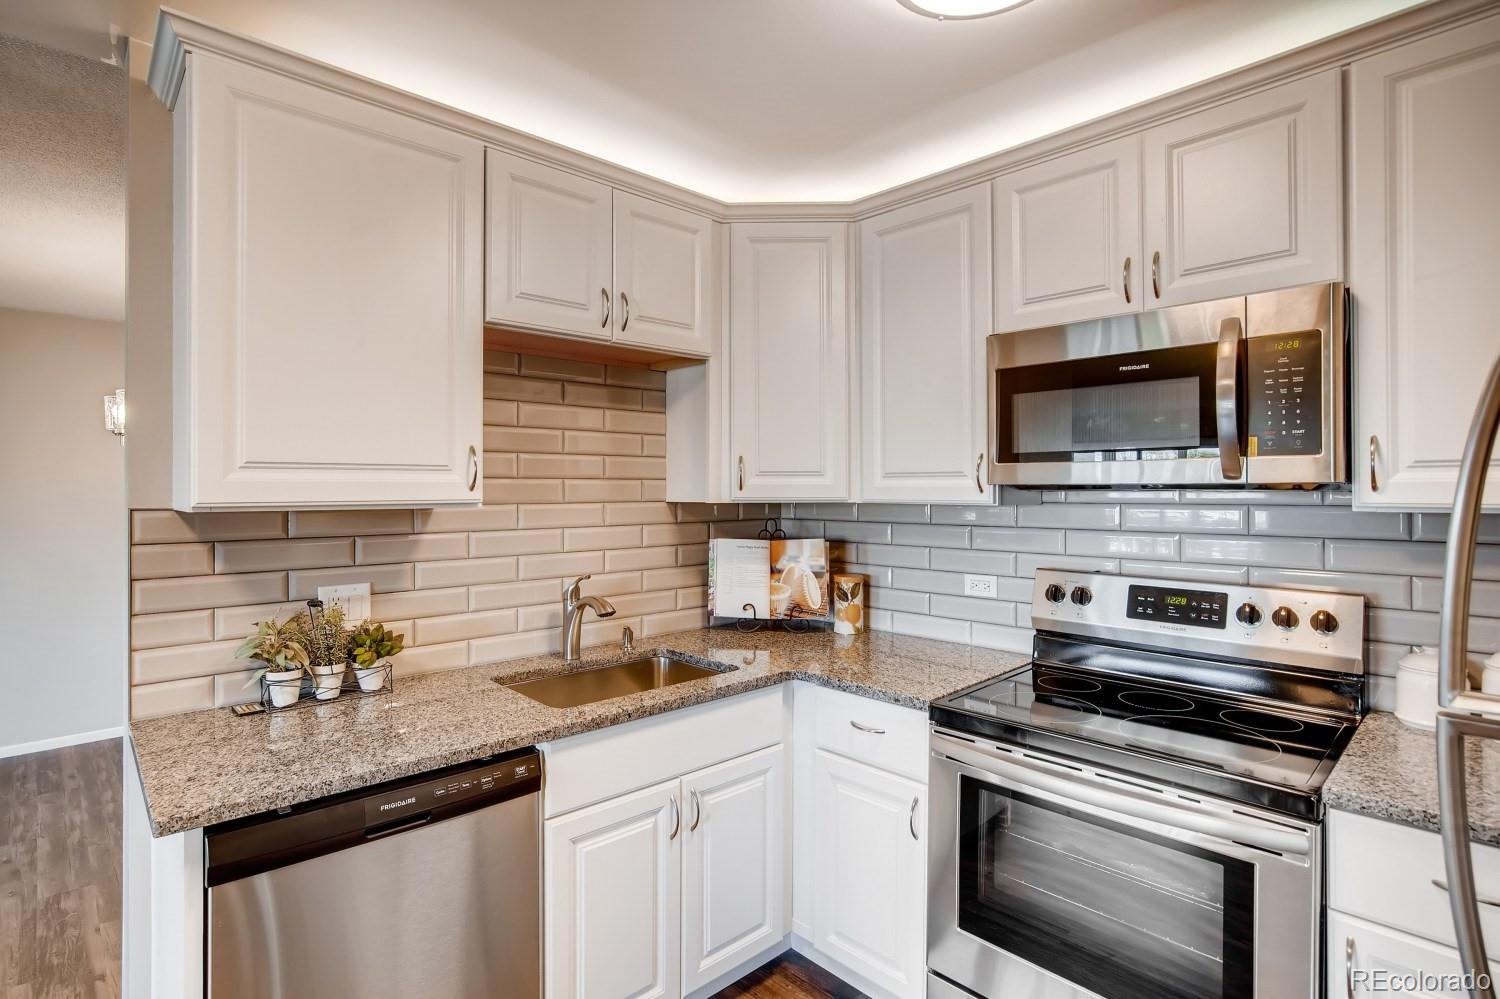 *** Price Slashed on this Beautiful Unit! Similar updated units have sold up to $287,500! ***  Newly Remodeled Kitchen with Lovely White Cabinets, Above Cabinet Lighting, a Beautiful Backsplash and Expanded Slab Granite Countertops with Under-Mount SS Sink! Brand New, Never Been Used Stainless Steel Appliances! The Large Pantry and Beautiful Vinyl Plank Flooring Complete the Kitchen! Enjoy the Grand Open Floorplan with its Expansive Living and Dining Rooms that are Ideal for Entertaining and Comfortable Living! The Huge Master Bedroom Offers a Gigantic Walk-in Closet and a Oversized Private Bathroom! Both Bathrooms have Gorgeous New Vanity Cabinets with Granite Countertops and New Brushed Nickel Fixtures! You'll Love the Gorgeous Plantation Shutters Throughout and the Newer Patio Door that opens to the Large, Carpeted and Enclosed Four Season Lanai! Complete with Updated Modern lighting and New Paint Throughout. This Spacious Home Includes a Huge Finished Storage Room in the Unit Plus another Storage Locker in the building and a Large Storage Box in the Garage as well Making it Easy to Downsize! Completely Move-in Ready!  This Beautifully Remodeled Home is set back from the road and Offers Views of an Expansive Grassy Area with Gorgeous Flower Beds in the Summer! Awesome HOA includes Heat, Water, 24-hour security patrolling, Huge Clubhouse with Indoor & Outdoor Pool, Hot Tub, Sauna, Fitness Center, Lots of Activities, Restaurant and More! There is a 9 hole Par 3 Golf Course and You'll be Close to the Bus Stop Too!